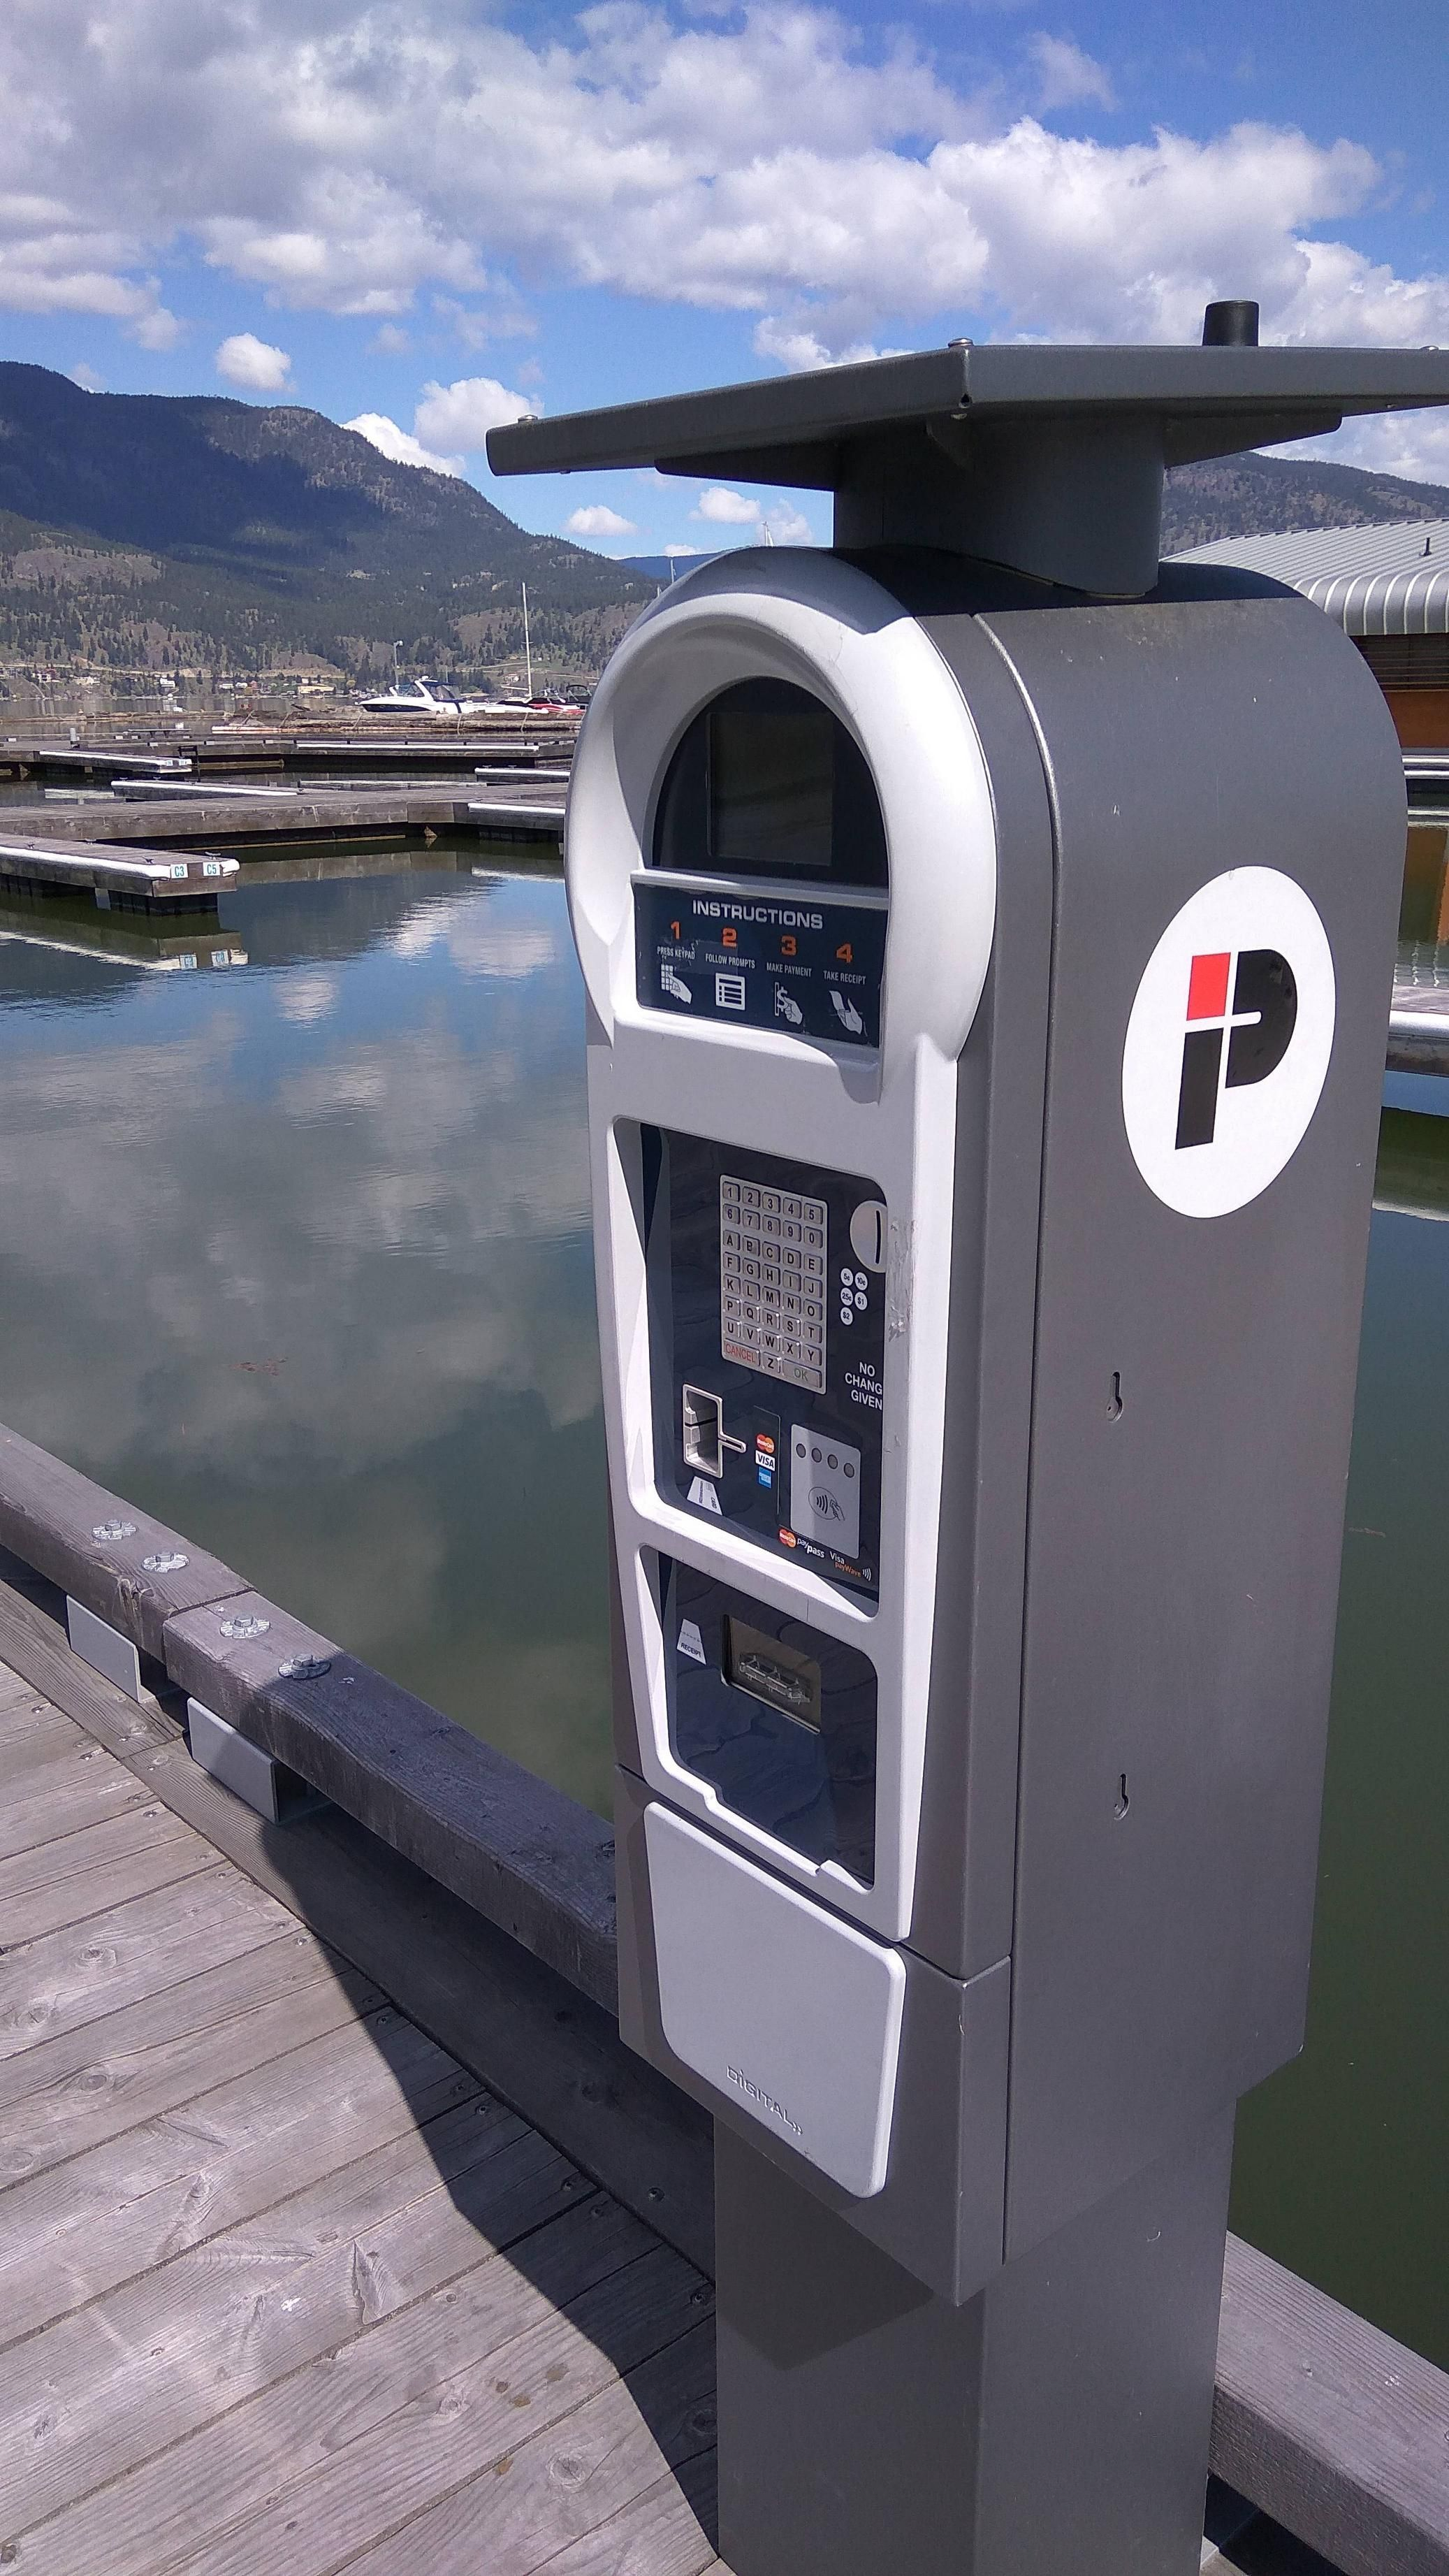 This boat marina has a parking meter for the boats